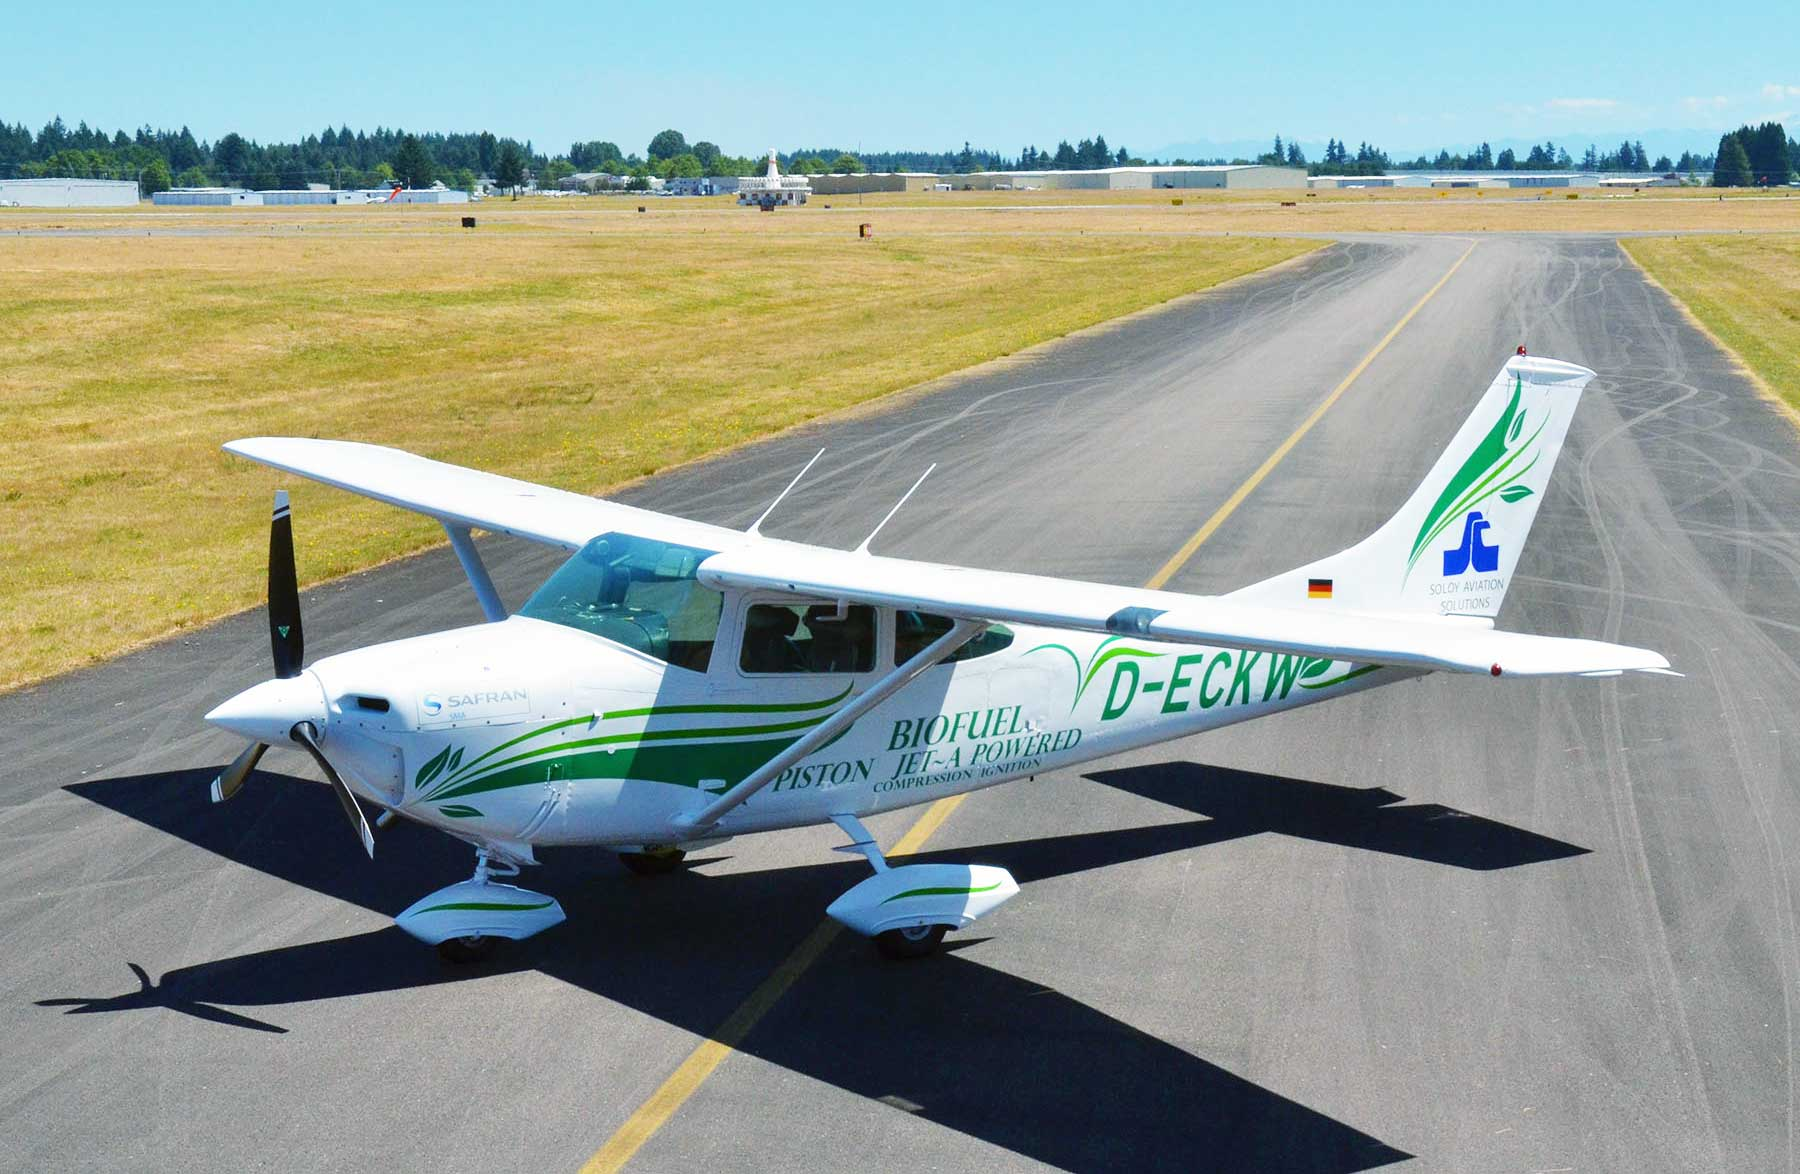 Kitfox, Van's, Lancair, F1 to launch new aircraft at Oshkosh